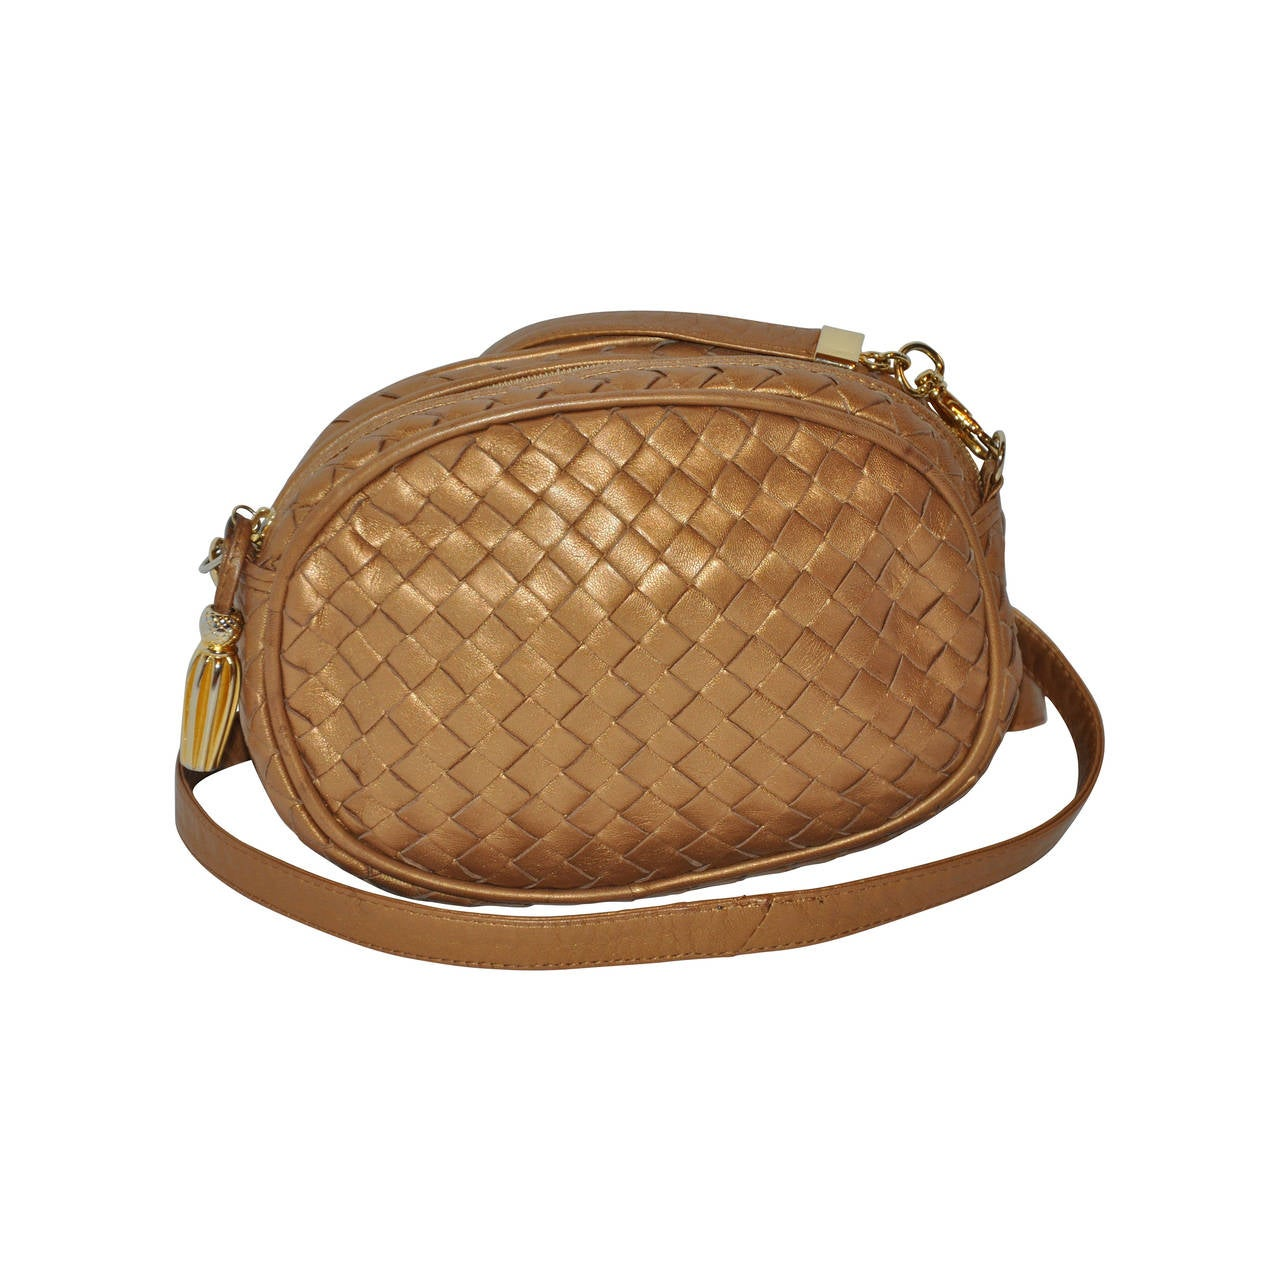 Bottega Veneta Metallic Gold Lambskin Signature Woven Cross-Body Bag